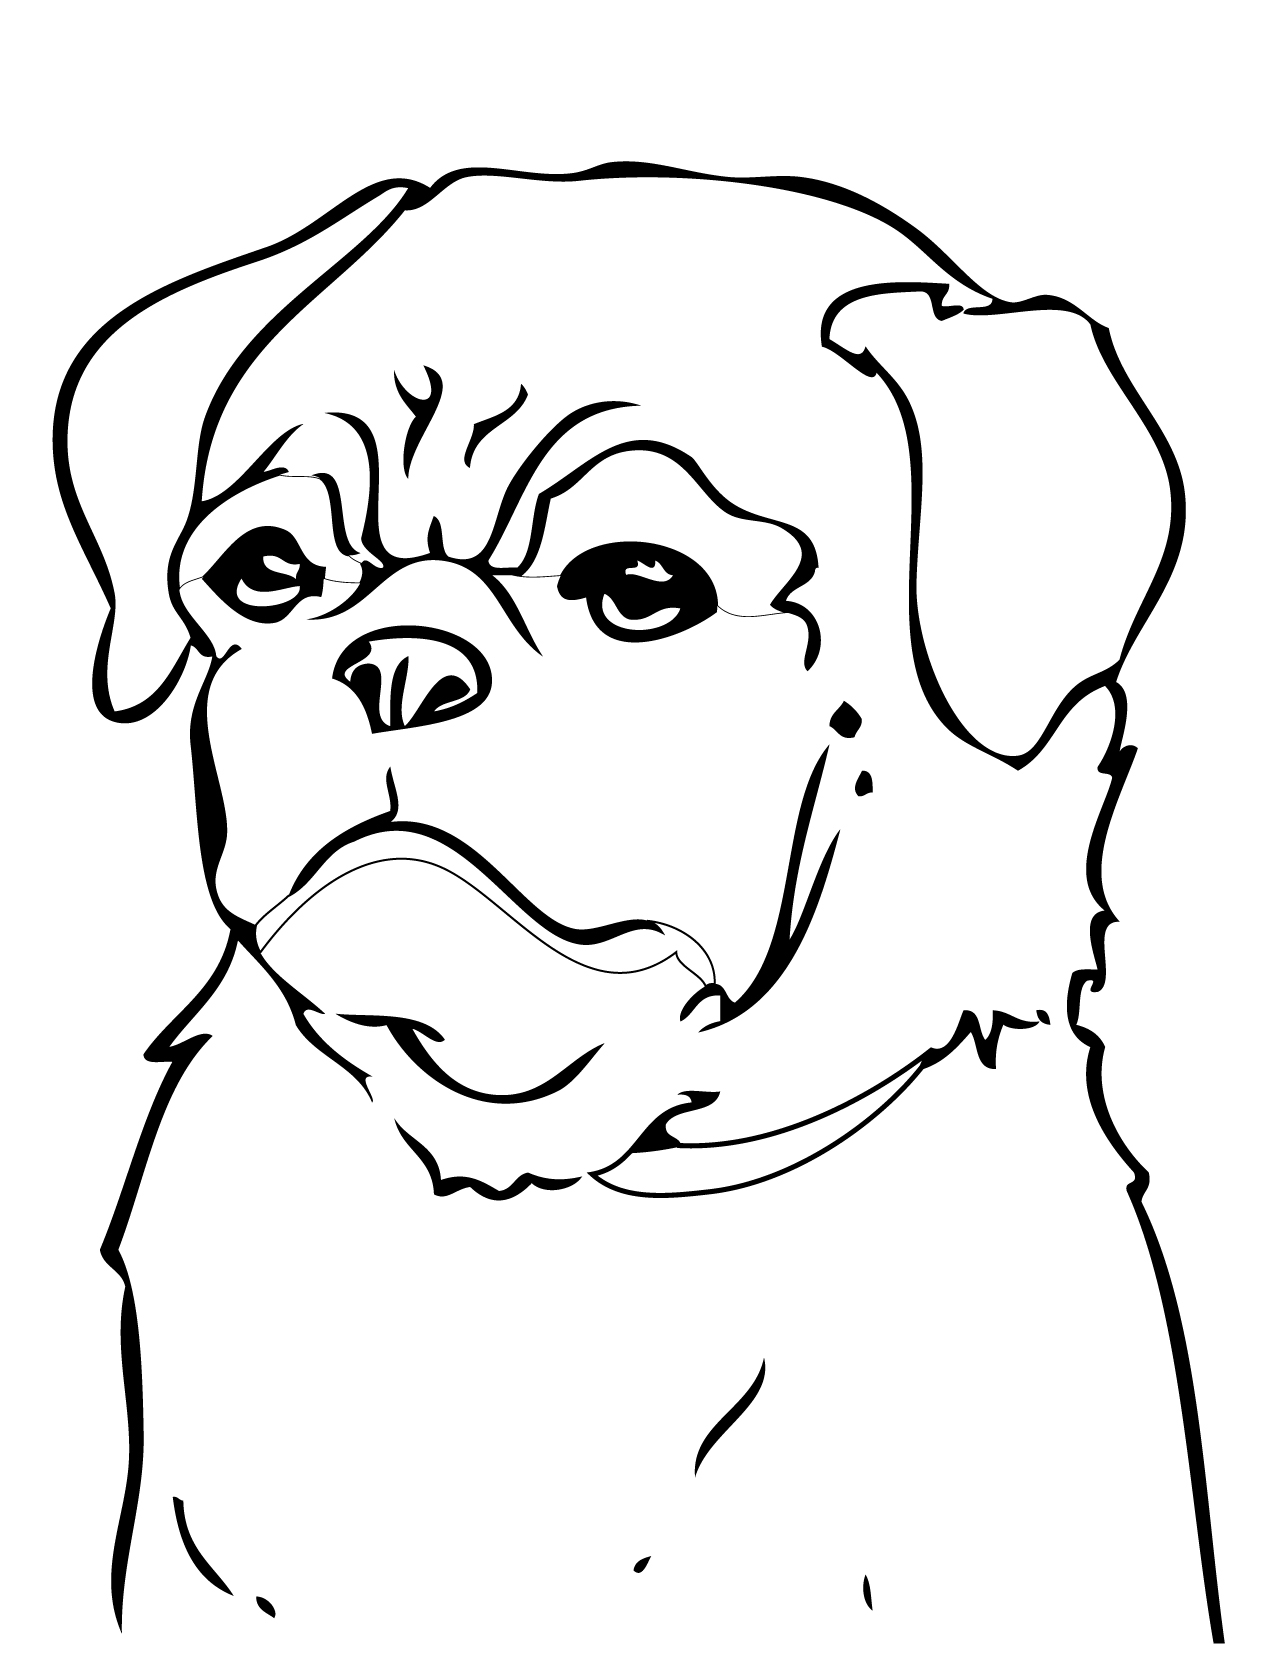 printable realistic dog coloring pages boy playing with dog coloring page coloring home coloring dog printable pages realistic